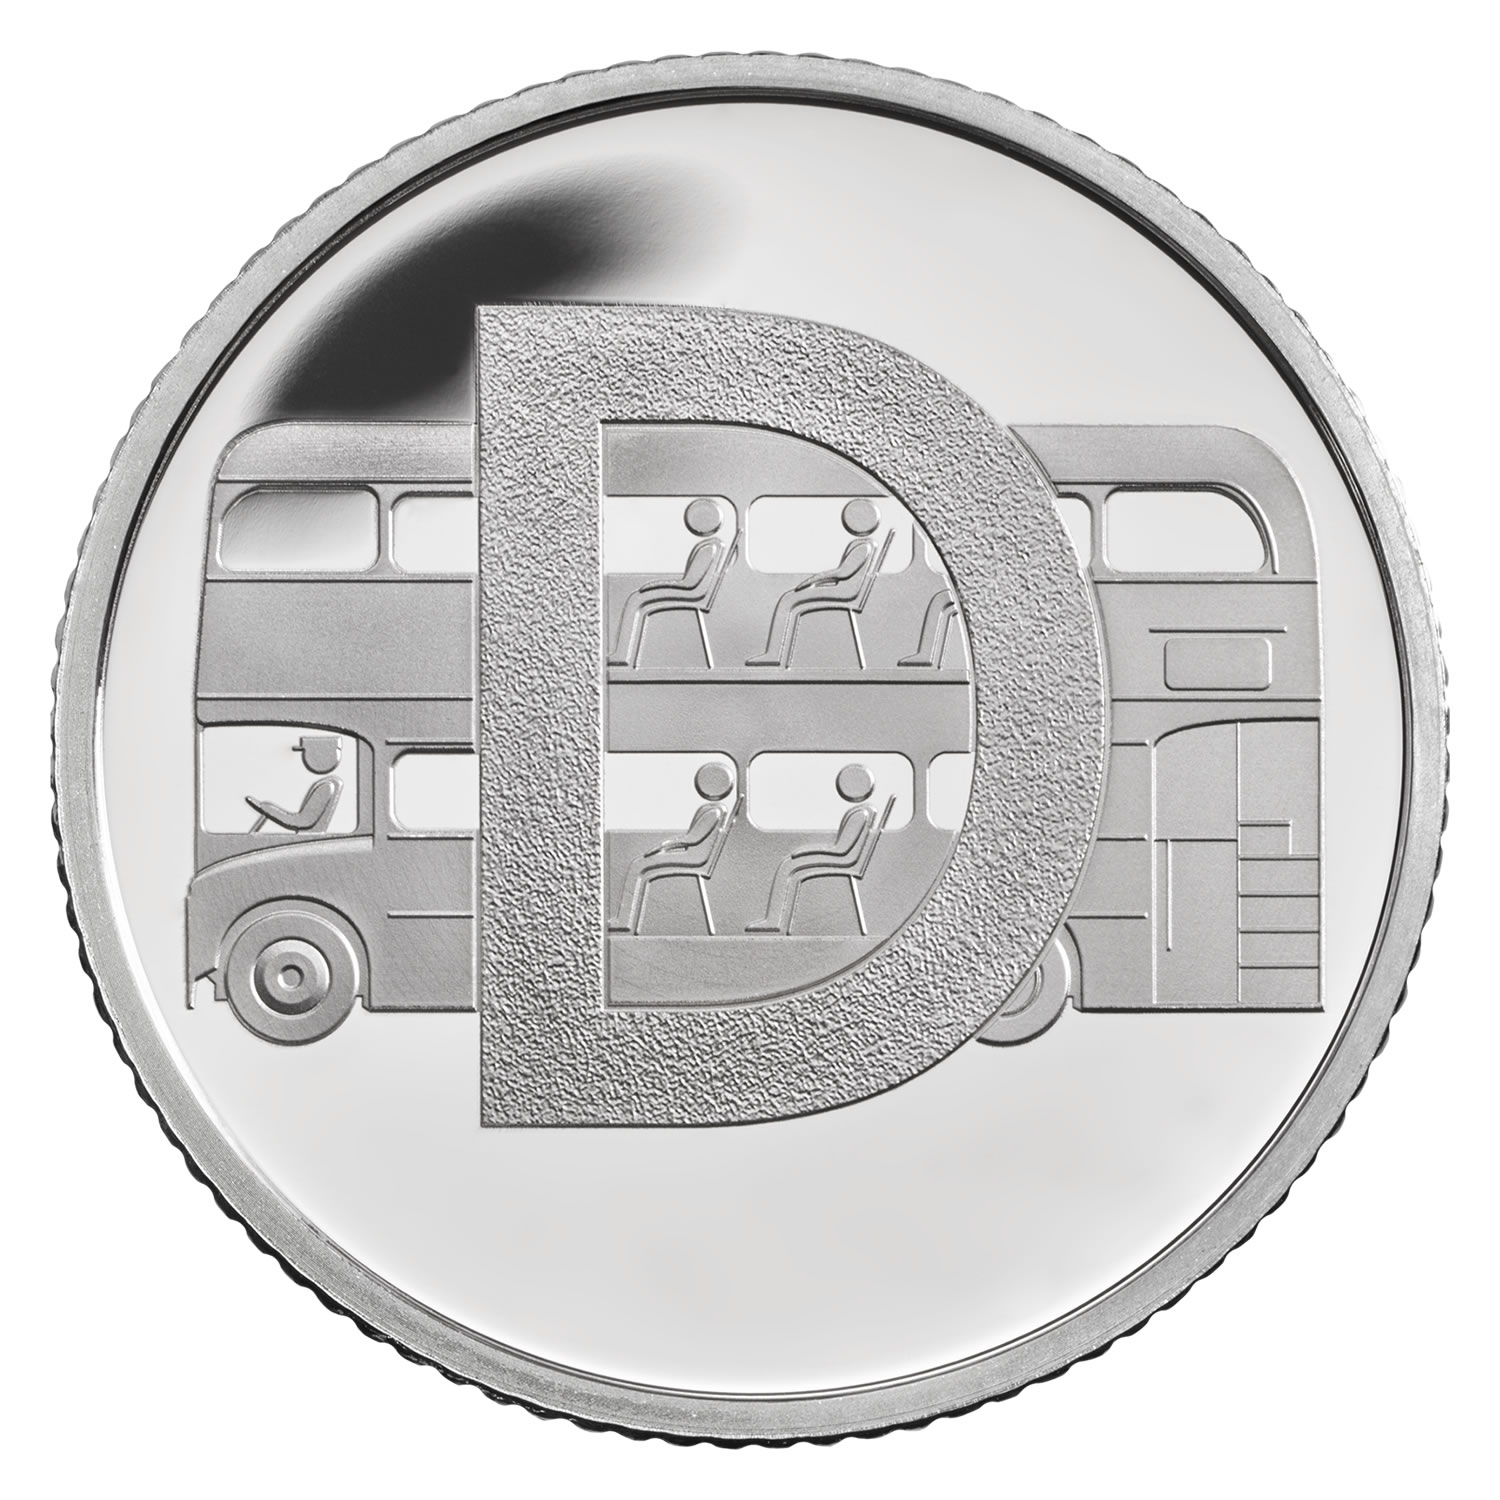 D - Double Decker Bus 2018 UK 10p Silver Proof Coin